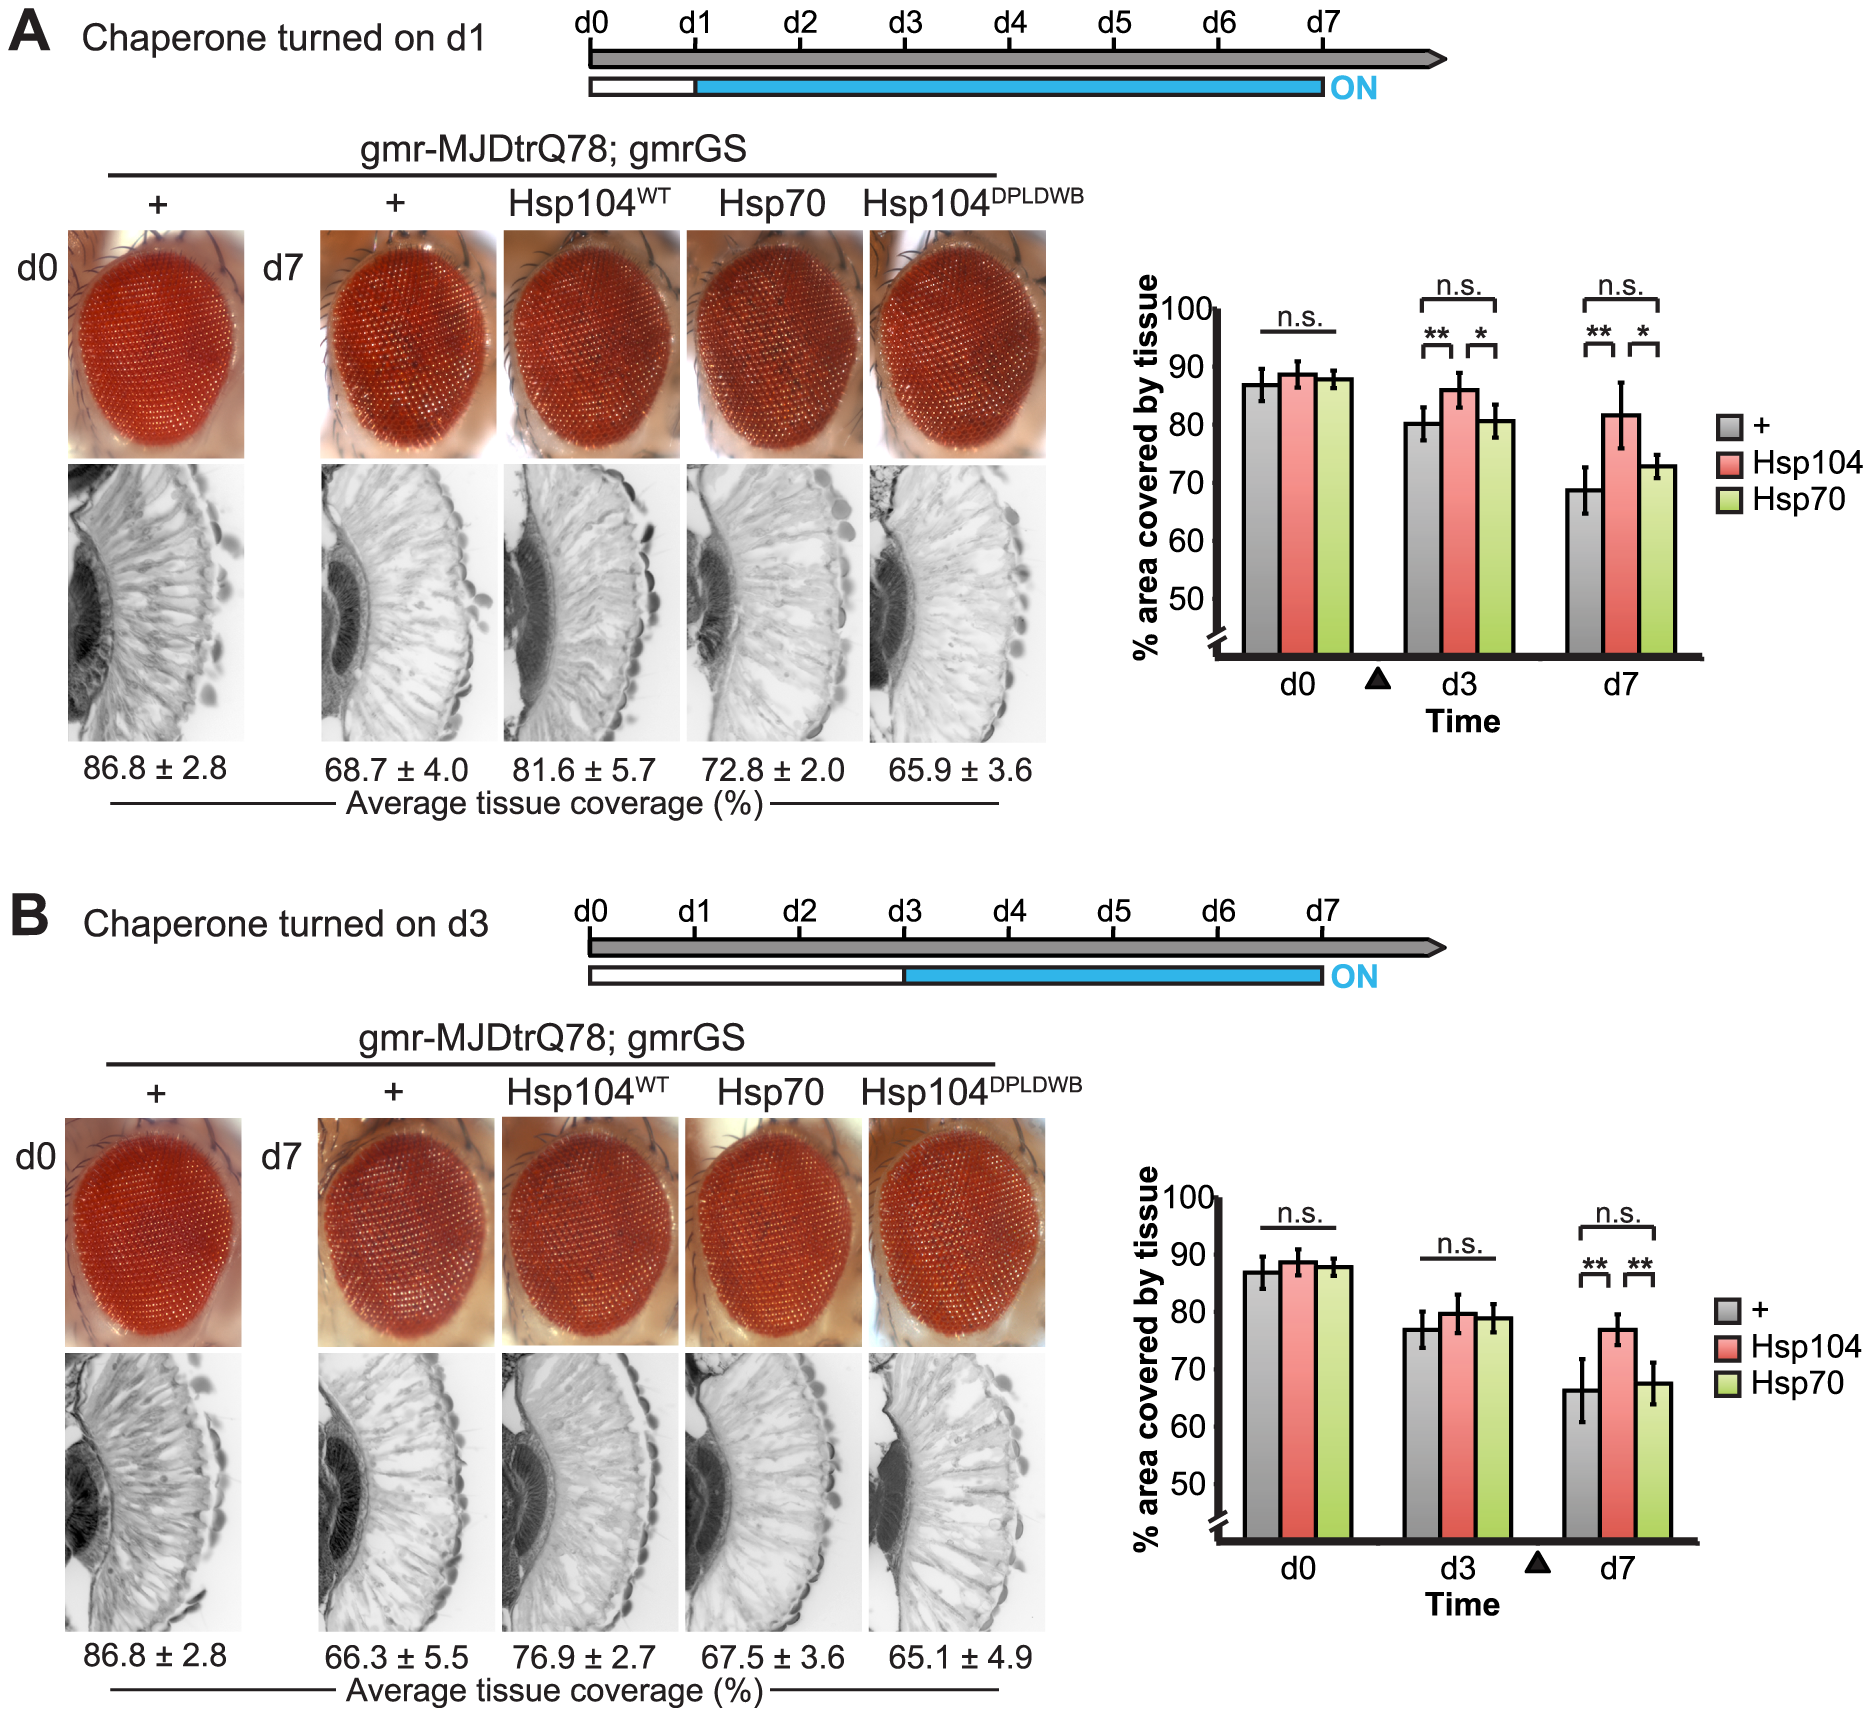 Progressive MJDtrQ78 pathogenicity can be suppressed by expression of Hsp104 after onset of degeneration.